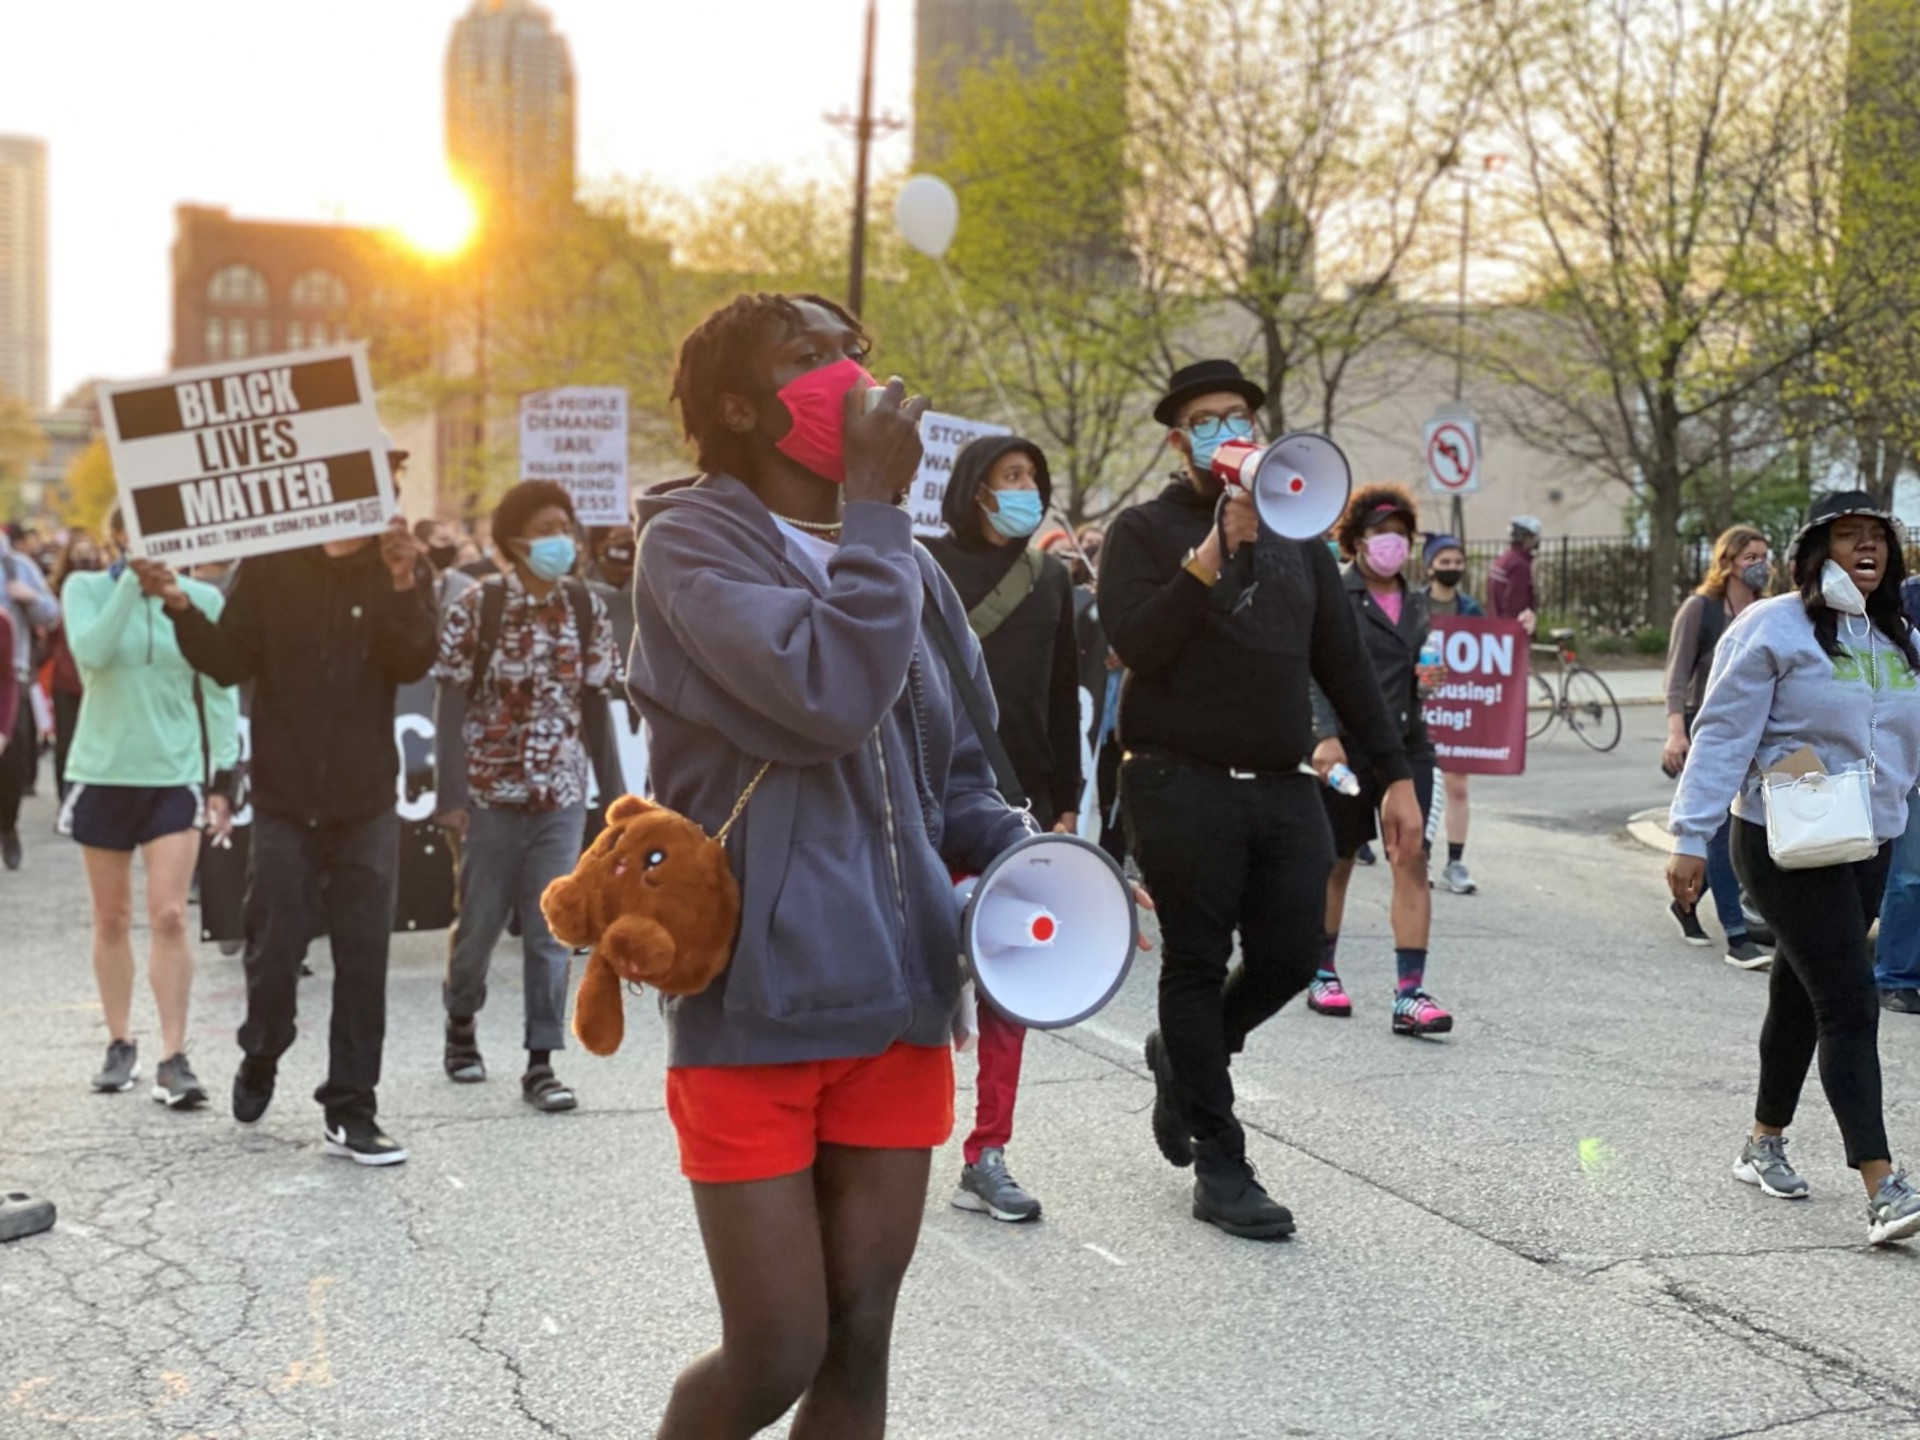 Nick Anglin, Black, Young, & Educated co-founder, leads a chant during a protest in Pittsburgh Tuesday, April 20, 2021.